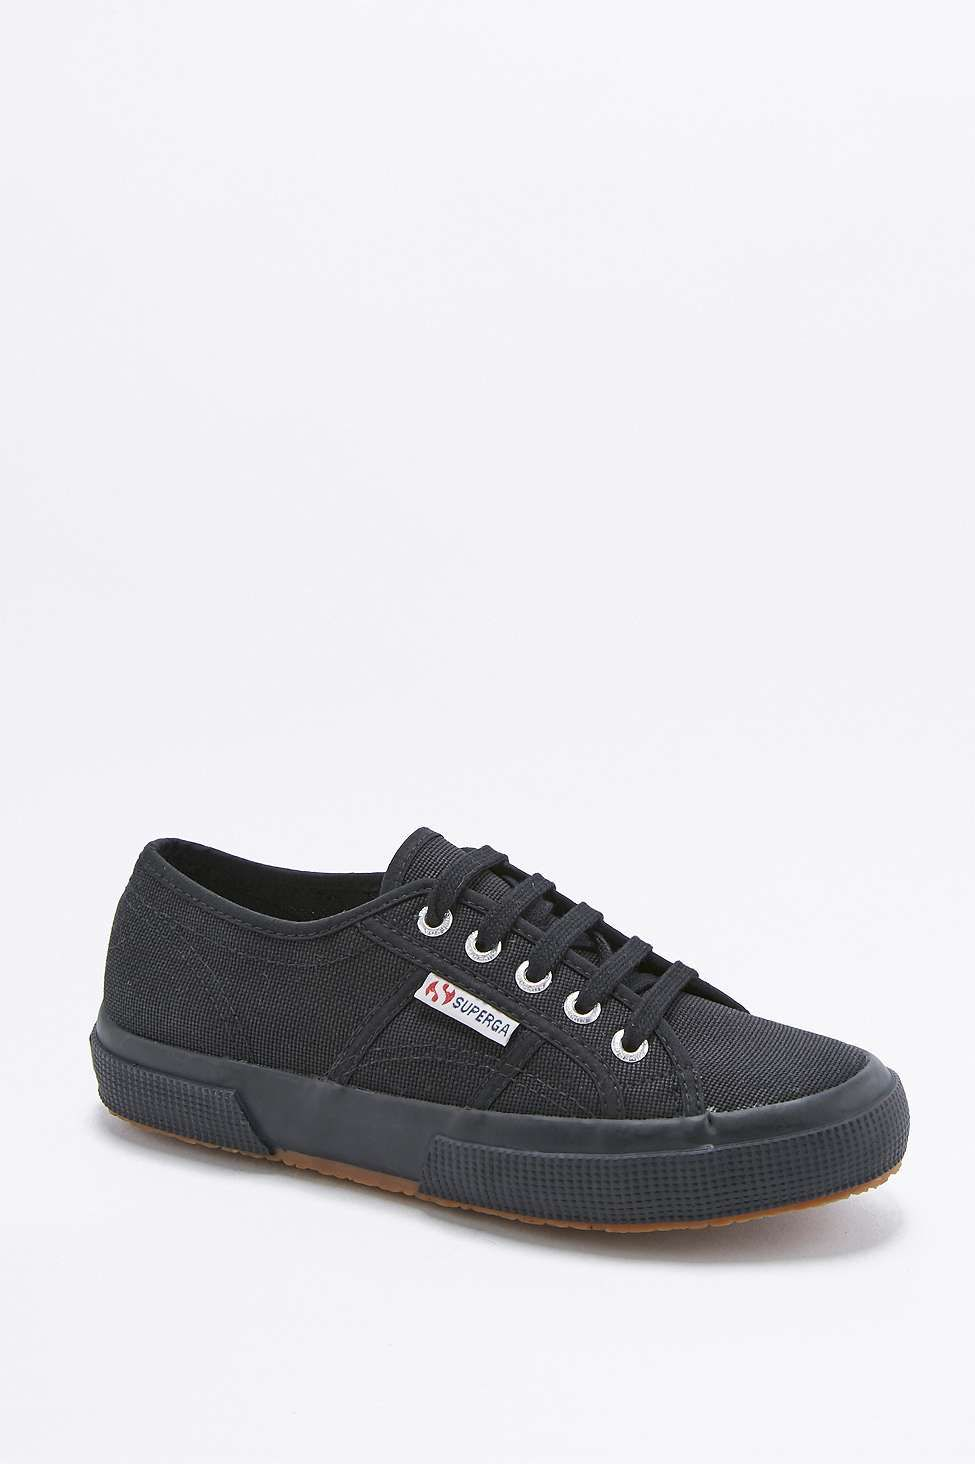 Outfitters Black Trainers Cotu 2750 Urban Superga Classic wqB8On7